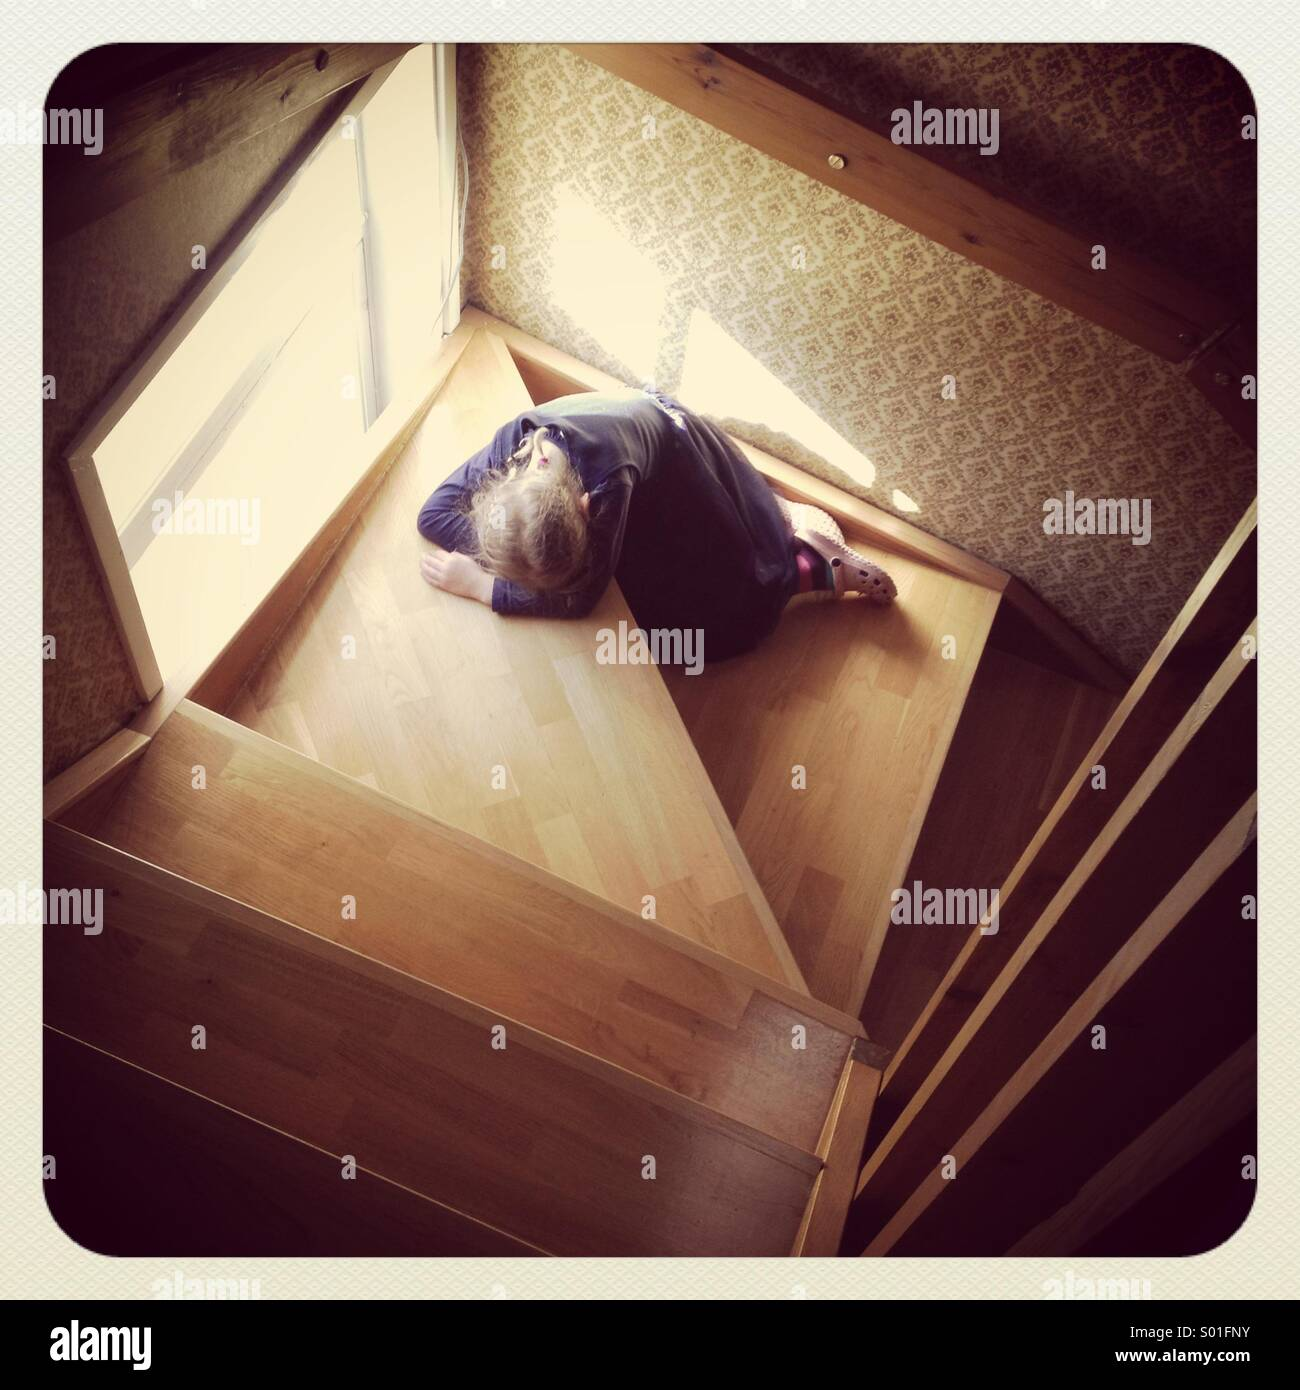 A young girl asleep or upset on some old fashioned wooden stairs - Stock Image